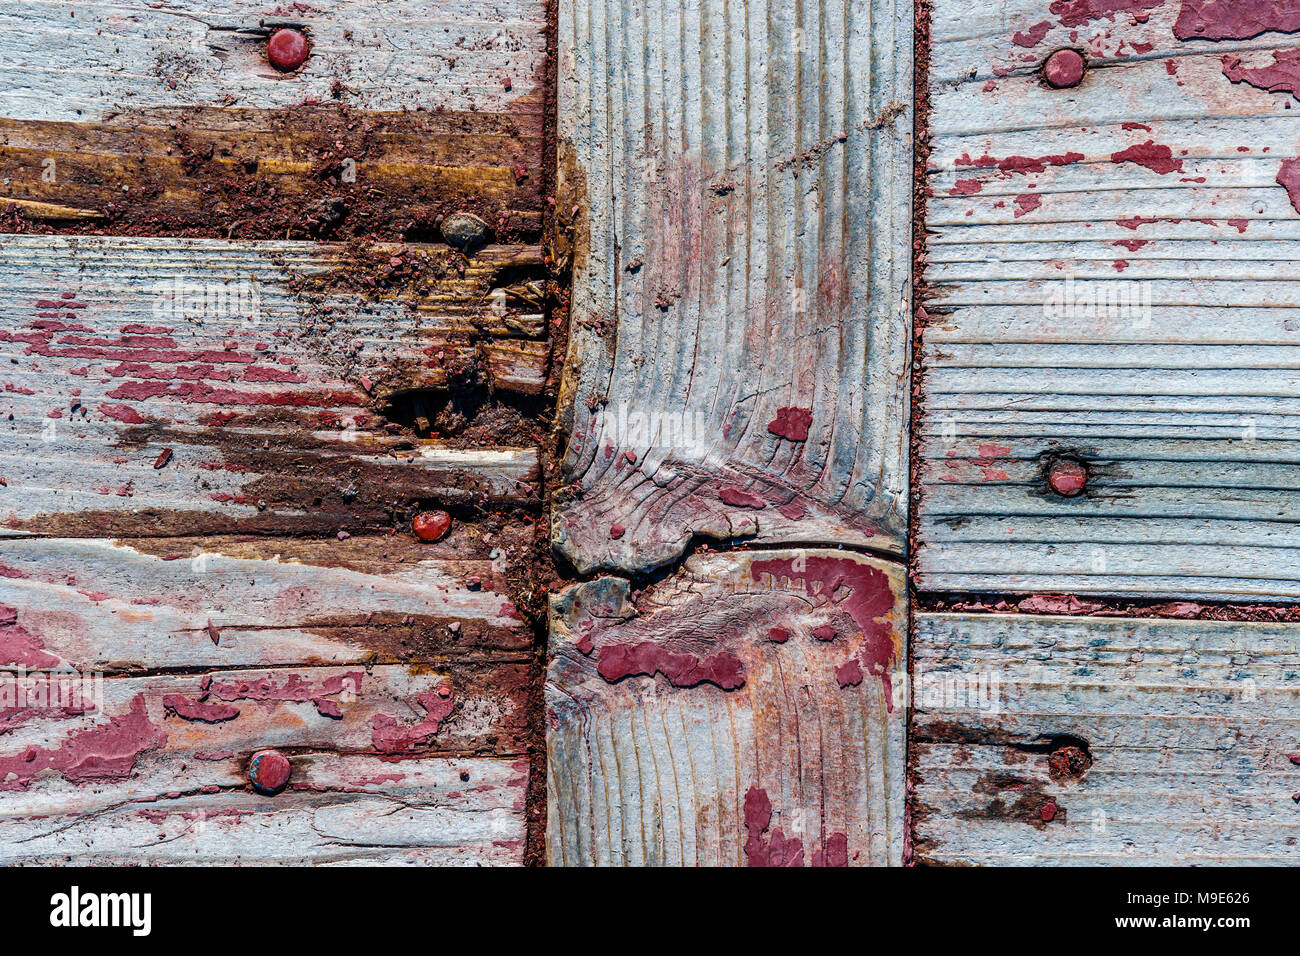 Wooden planks or boards with knots and snags, peeled off red paint, cracks and nail heads. Rich grunge, rough texture - Stock Image